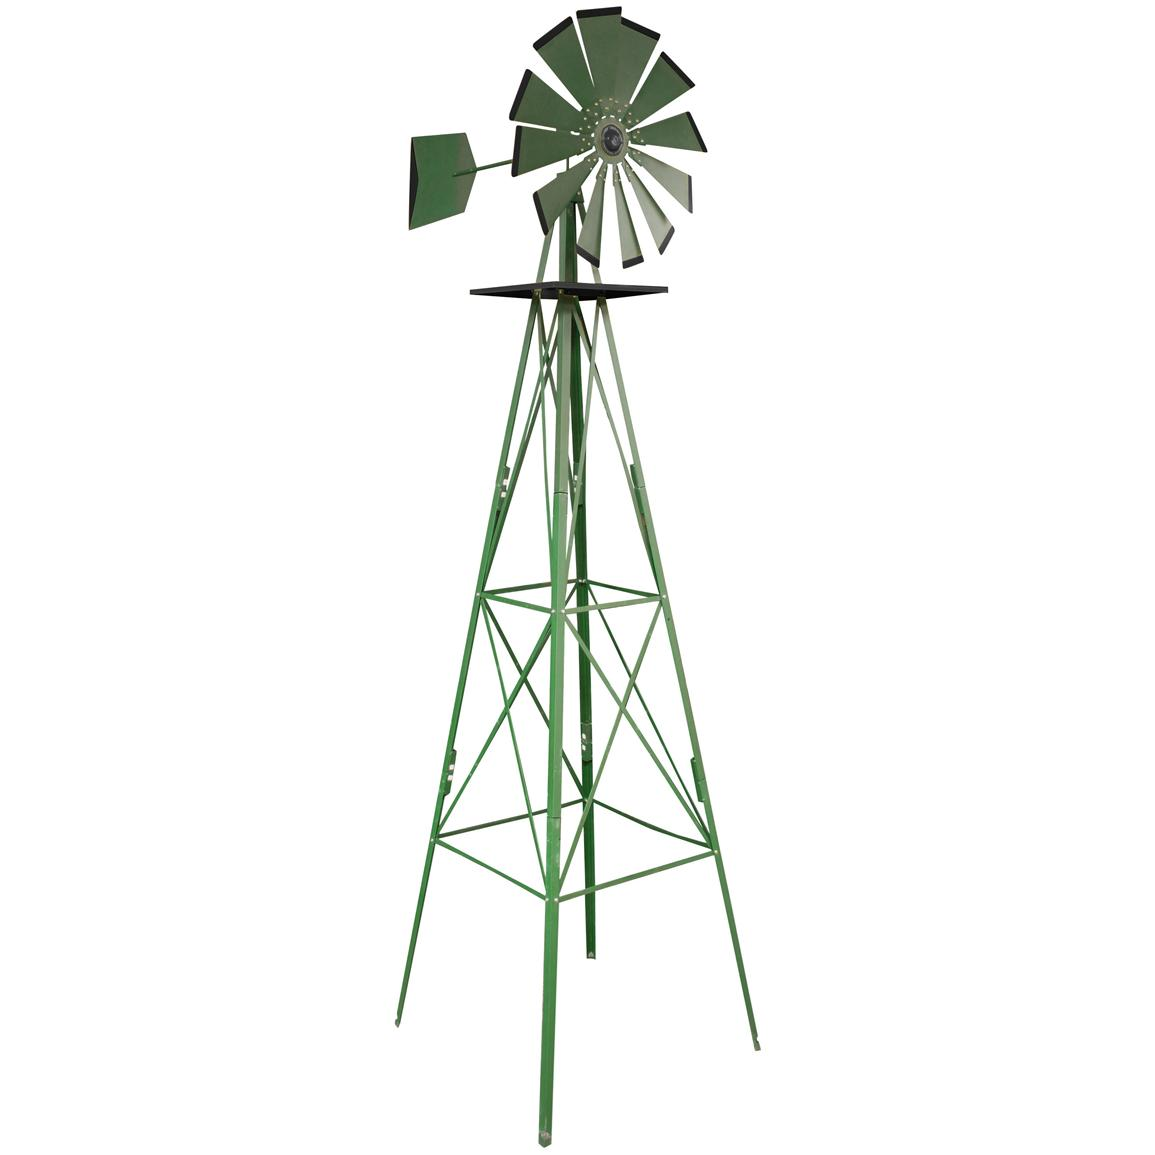 Buffalo Tools® Sportsman 8 foot Windmill